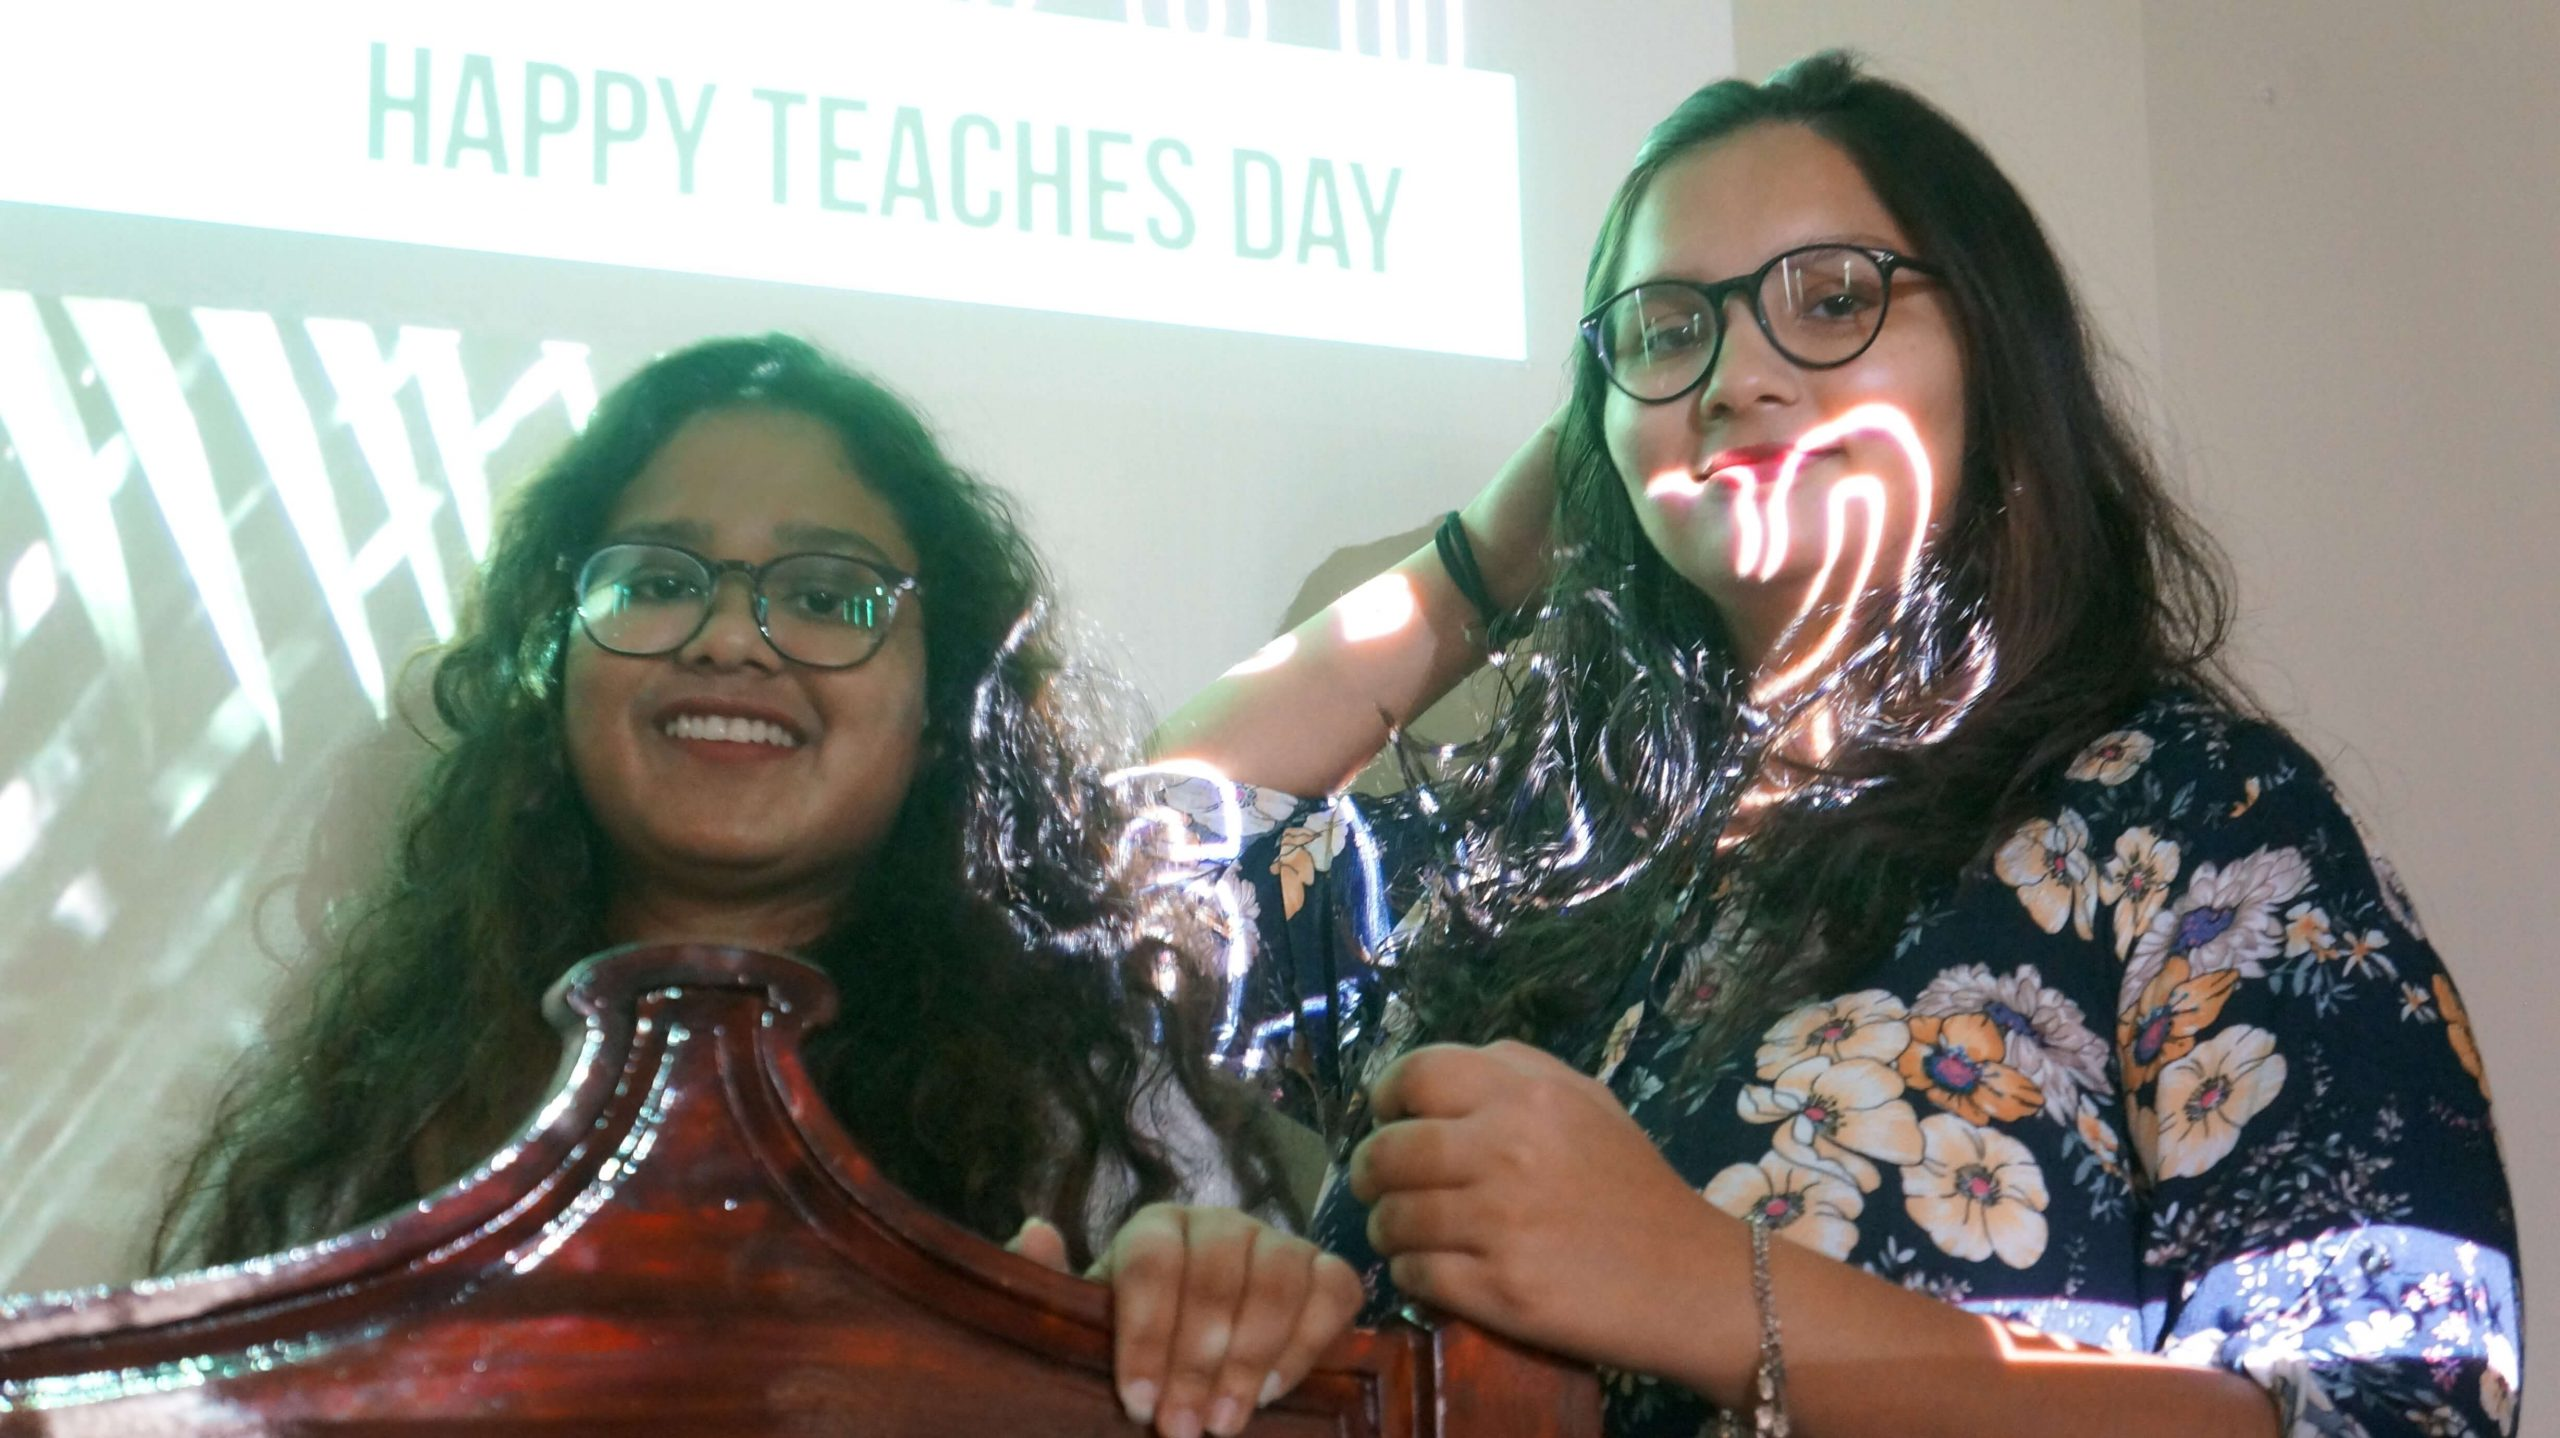 Teacher's Day_1